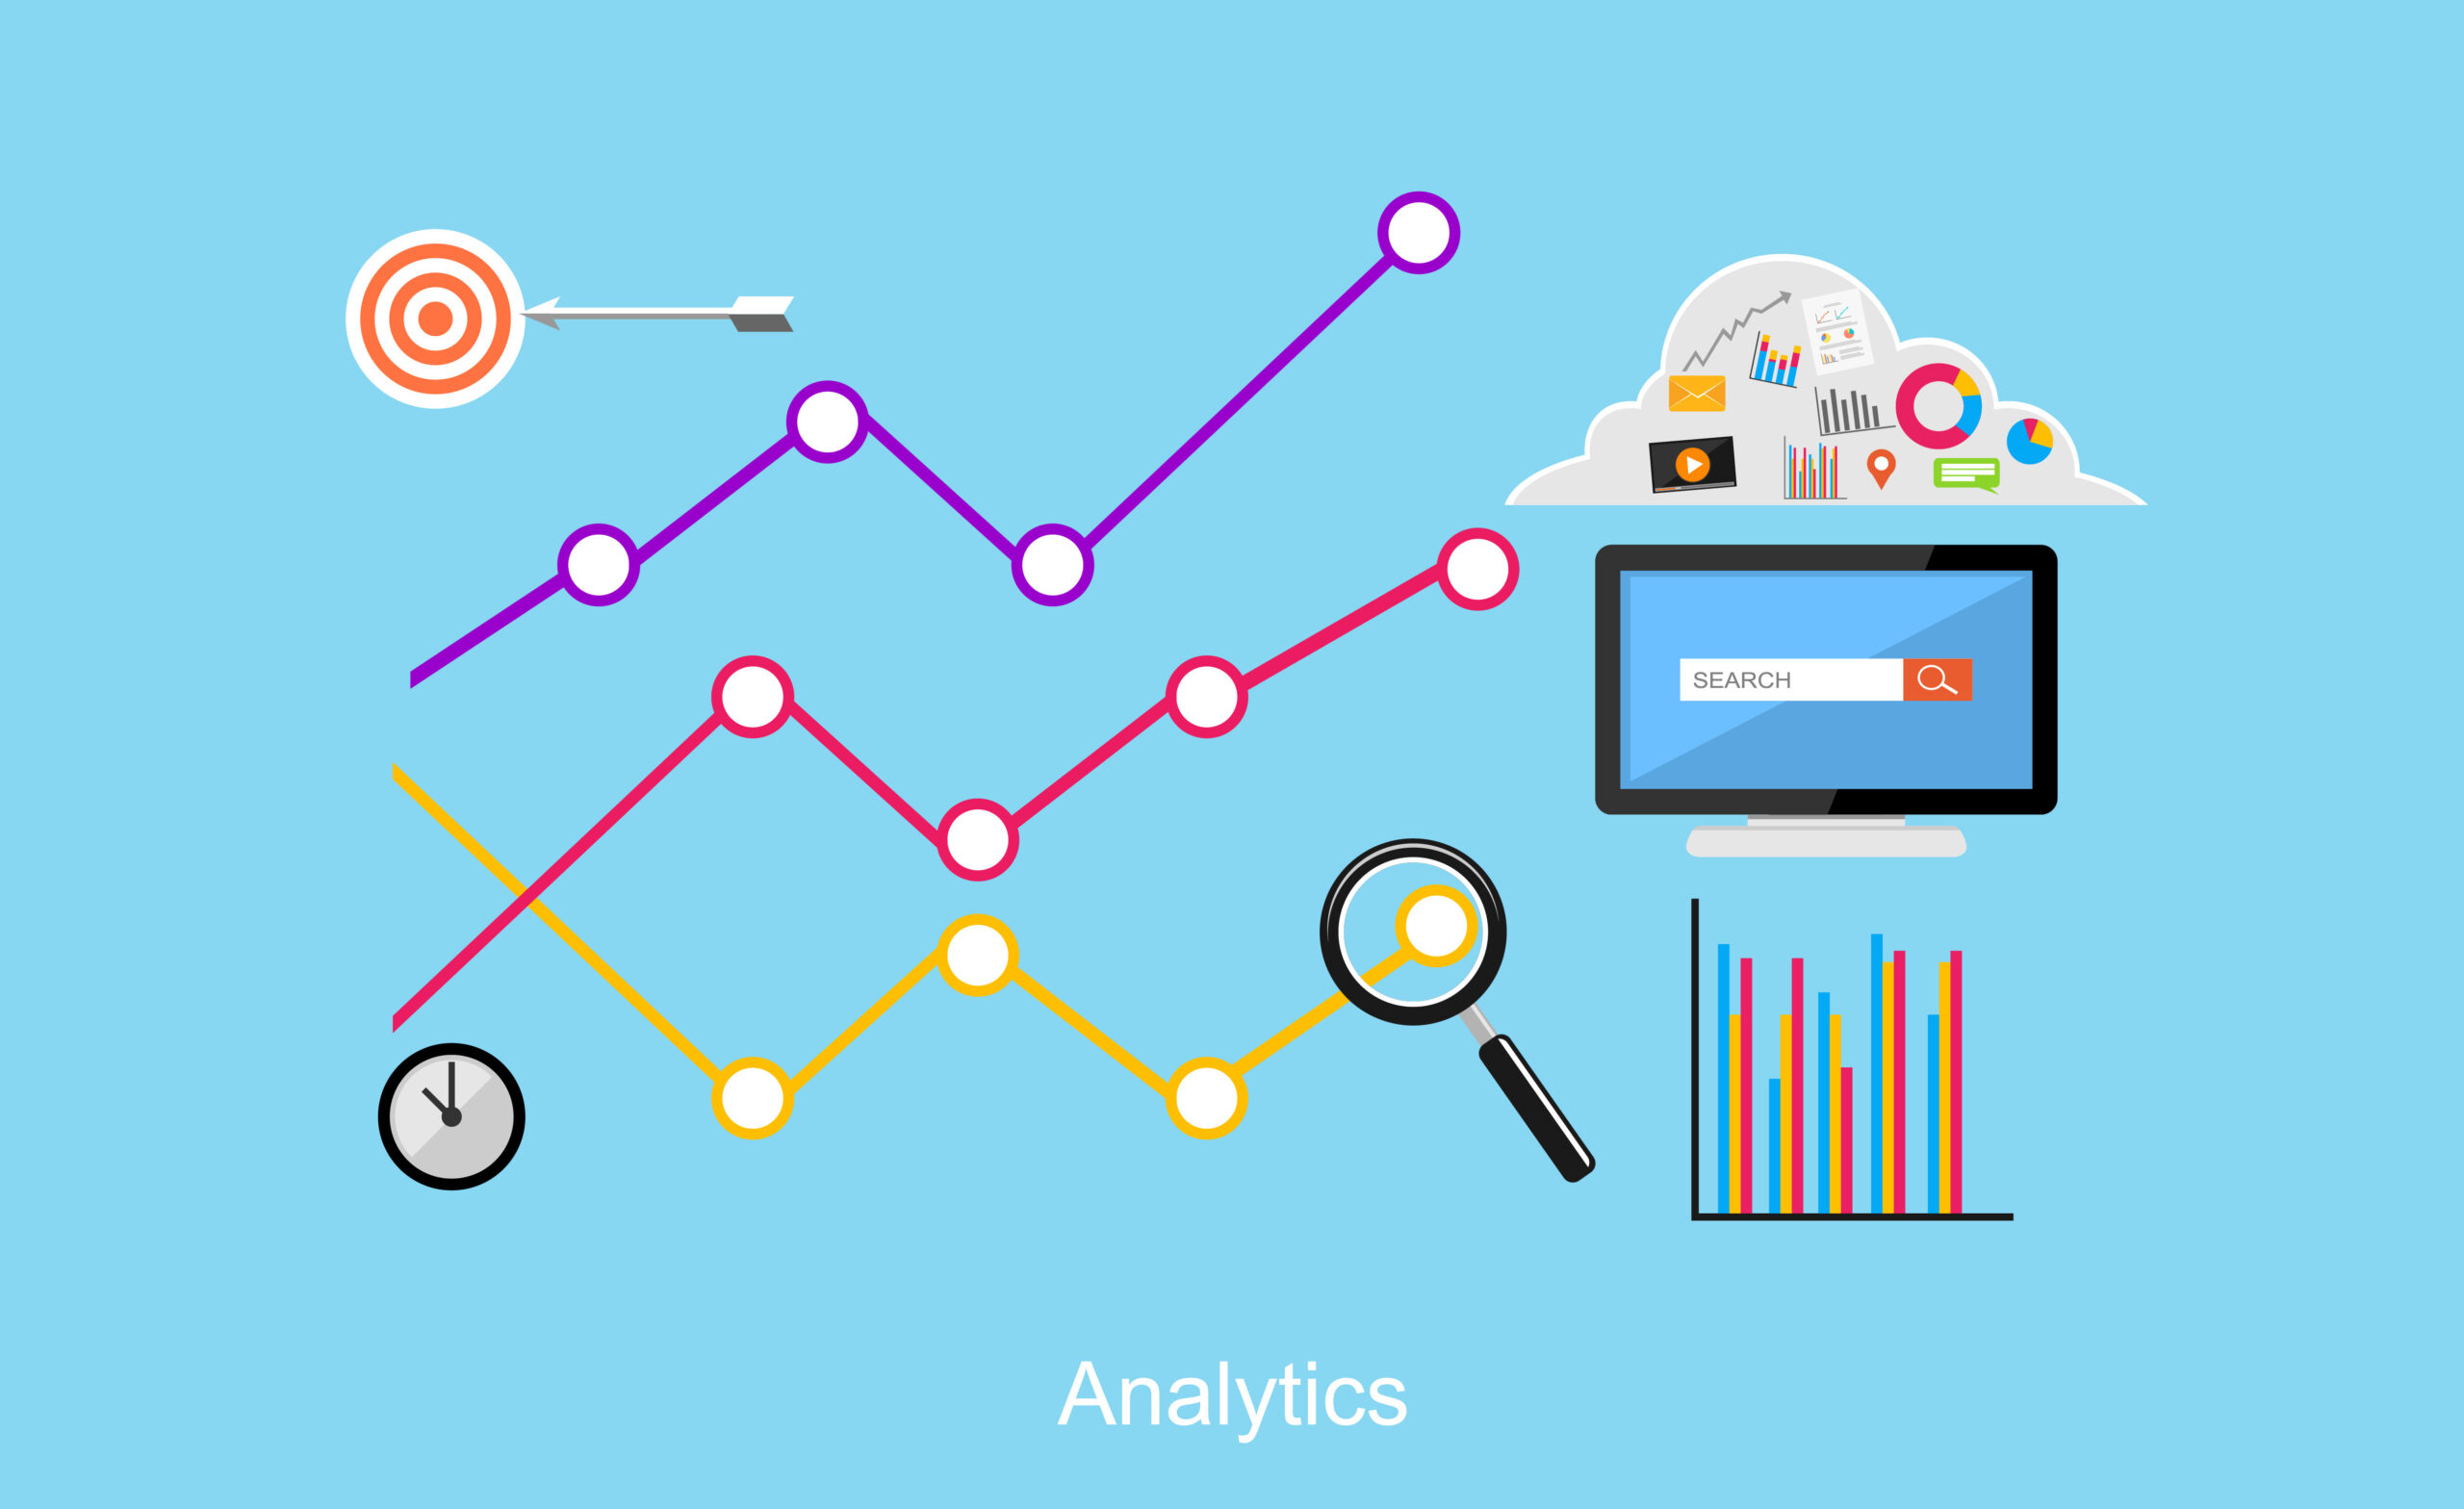 Marketing & Communications: Building a new marketing analytics platform for a generics company